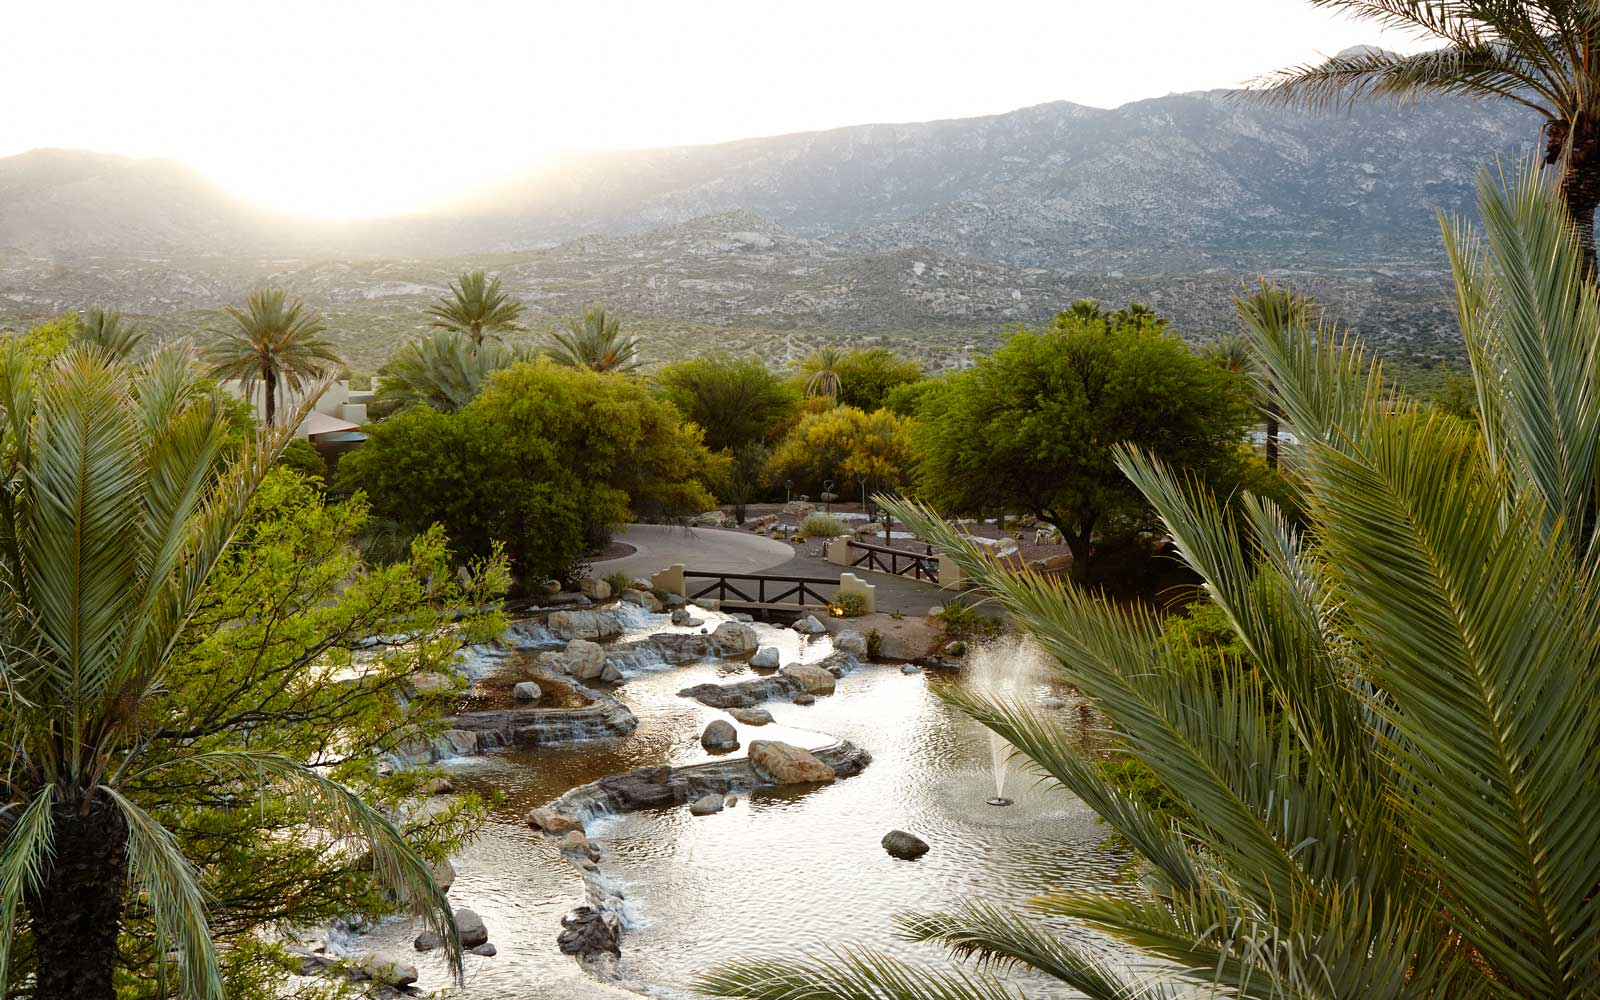 The Best Resorts in the U.S. for Getting Back to Nature